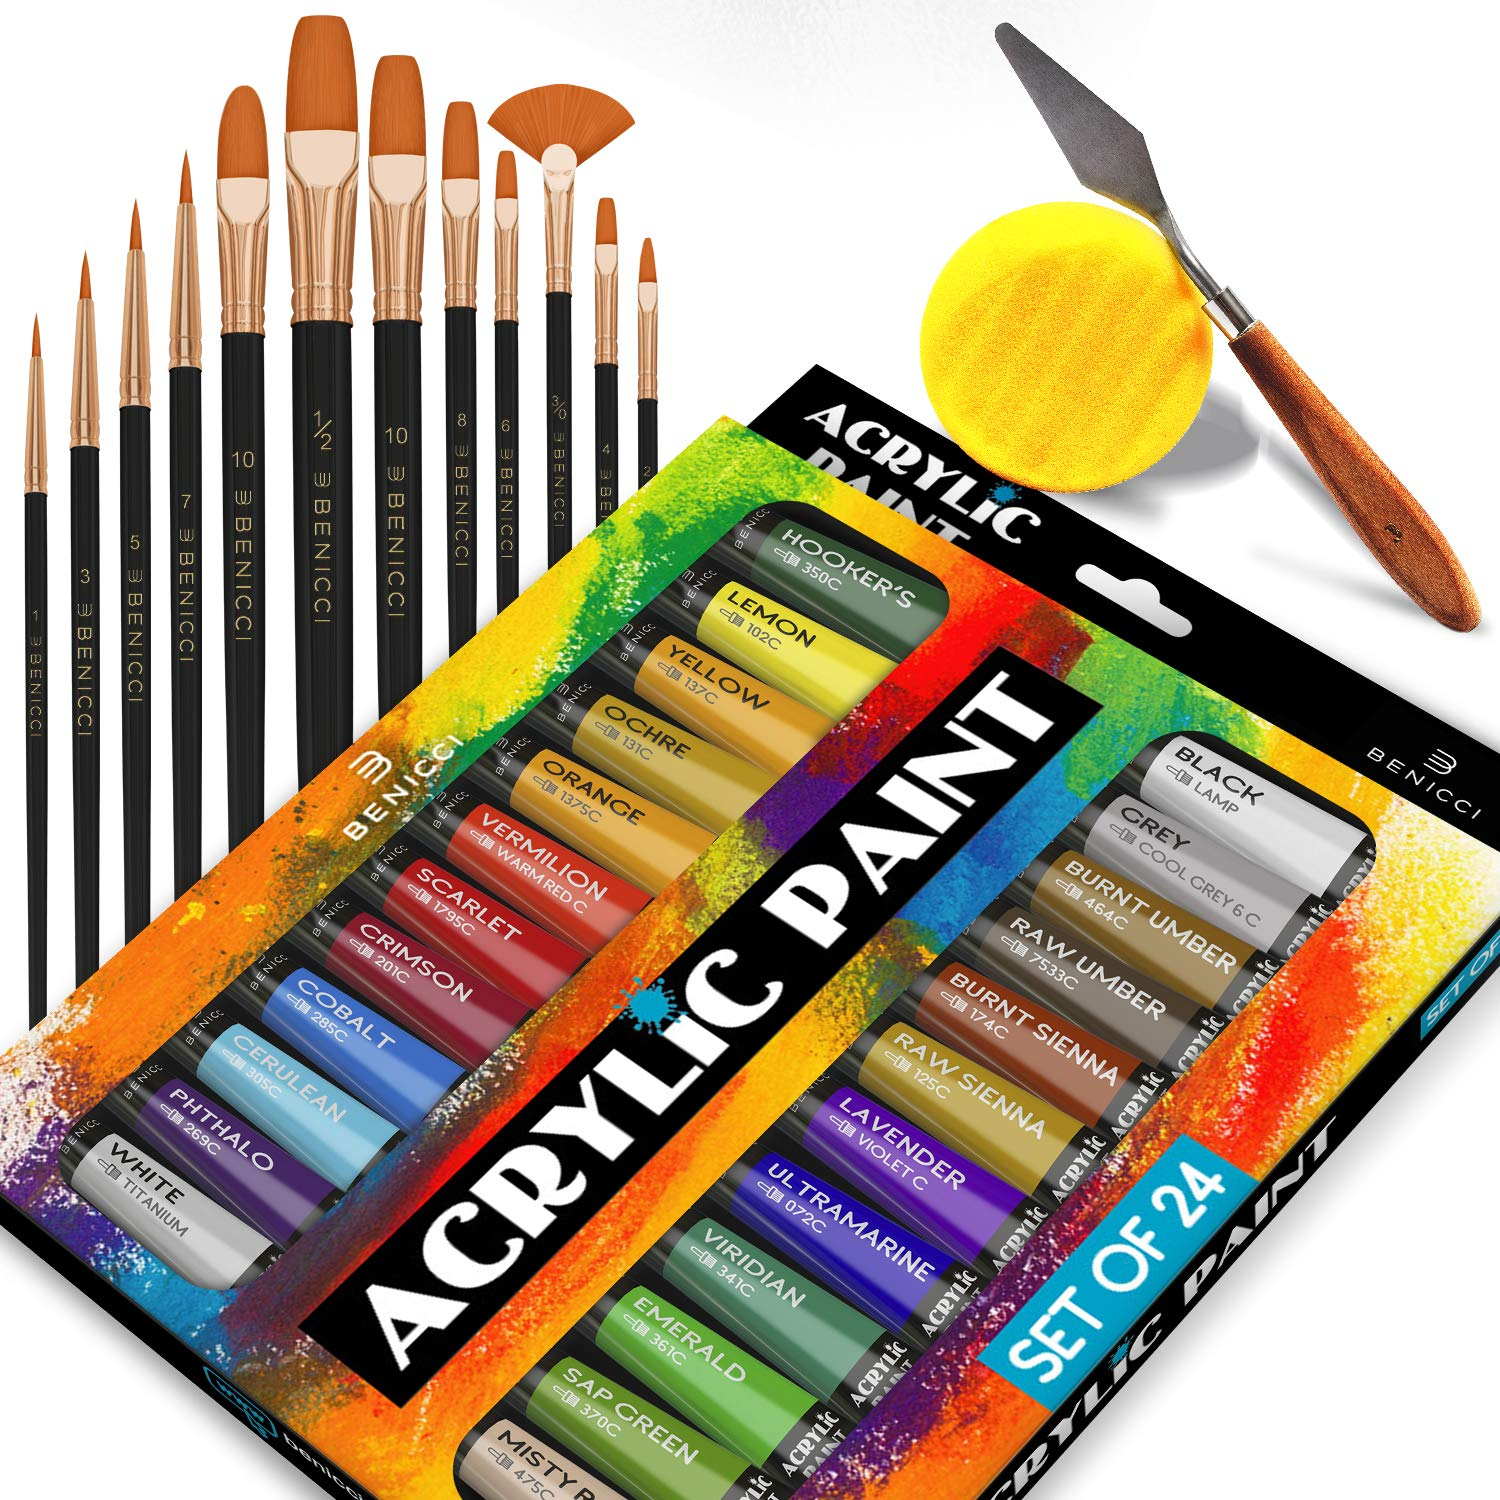 Complete Acrylic Paint Set - 24х Rich Pigment Colors - 12x Art Brushes with Bonus Paint Art Knife & Sponge - for Painting Canvas, Clay, Ceramic & Crafts, Non-Toxic & Quick Dry - for Kids & Adults by Benicci